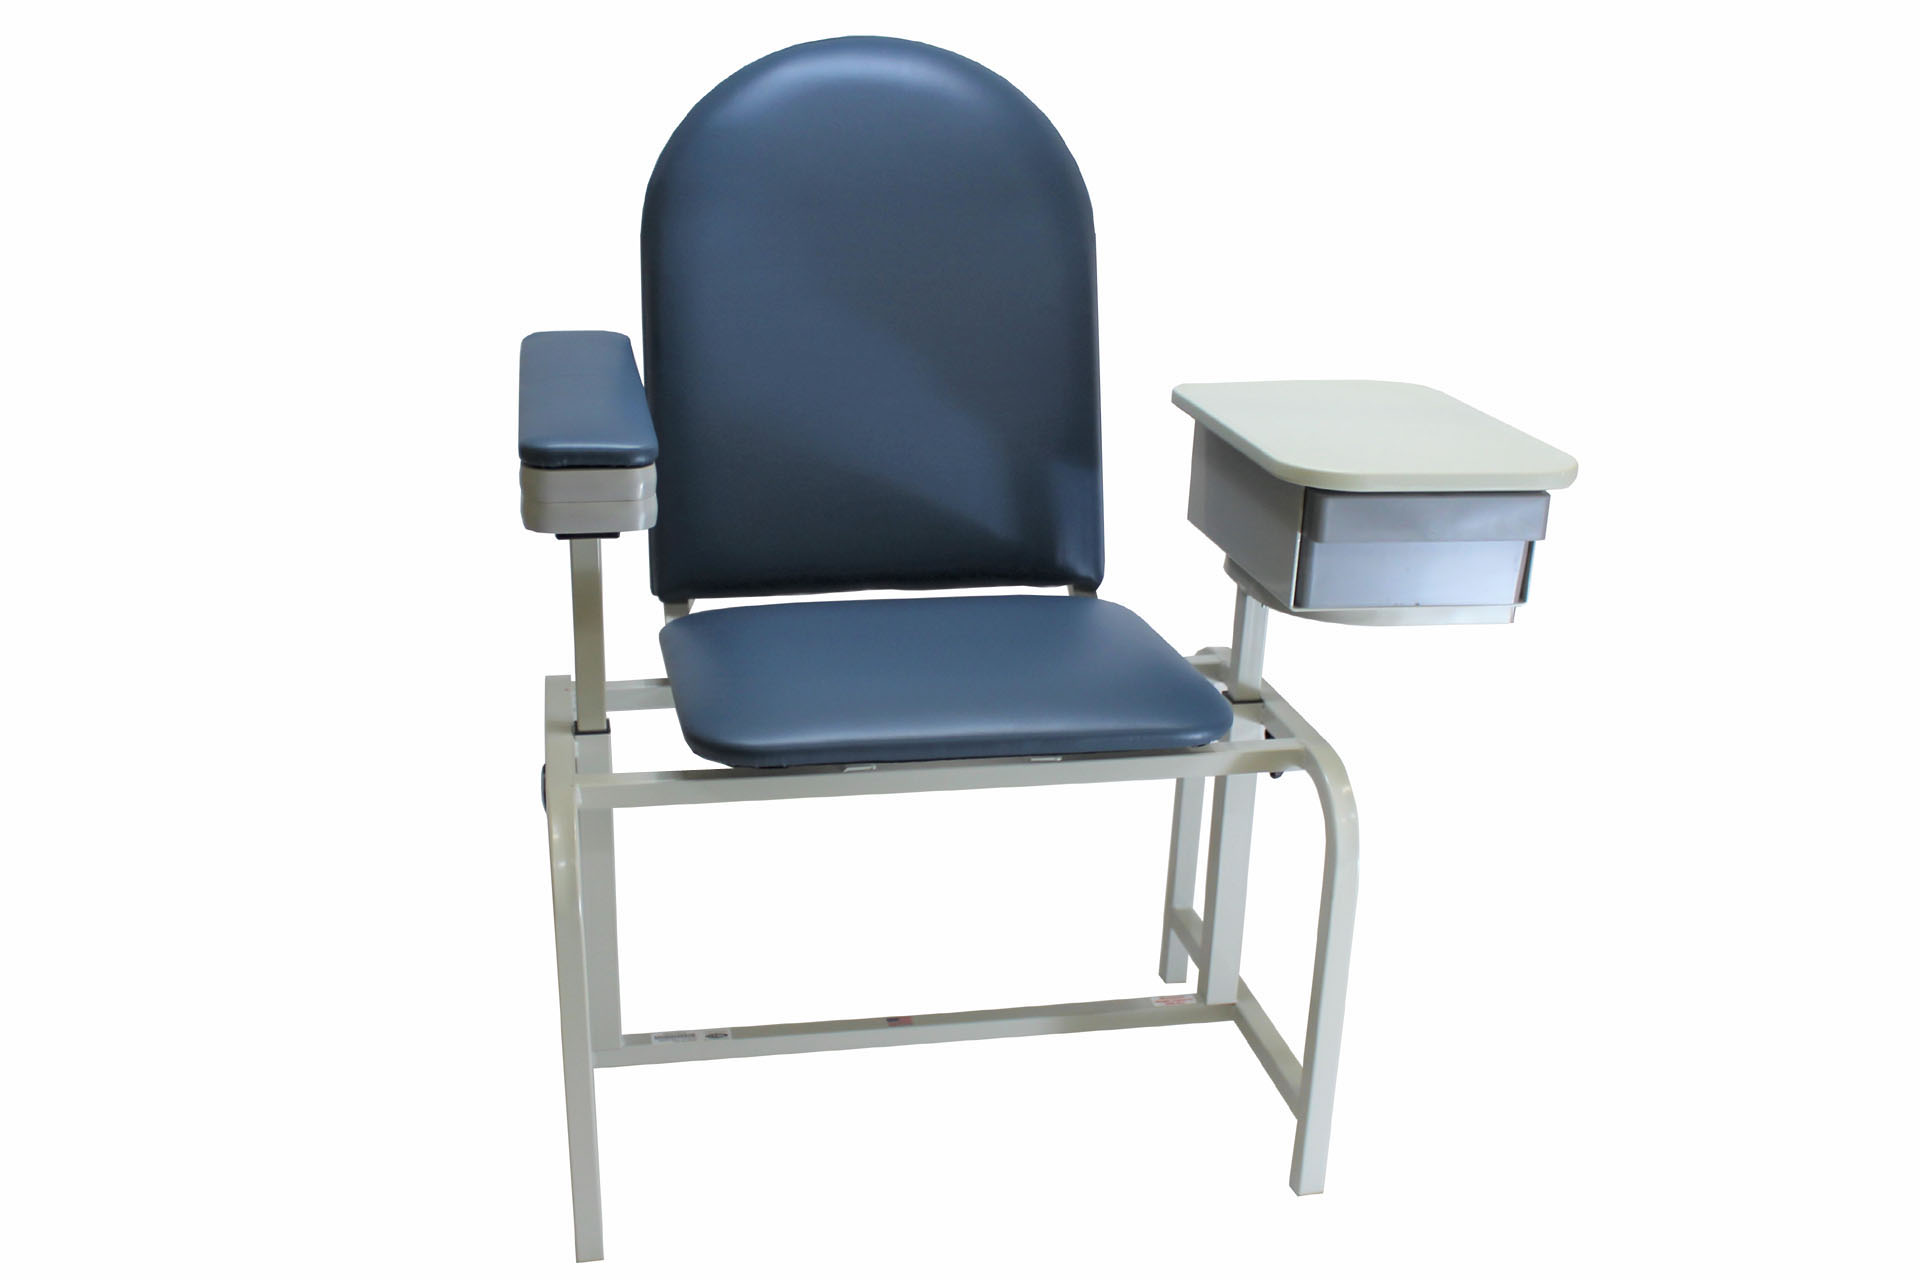 Phlebotomy Chairs Pinestar Technology Inc Phlebotomy Chairs Products